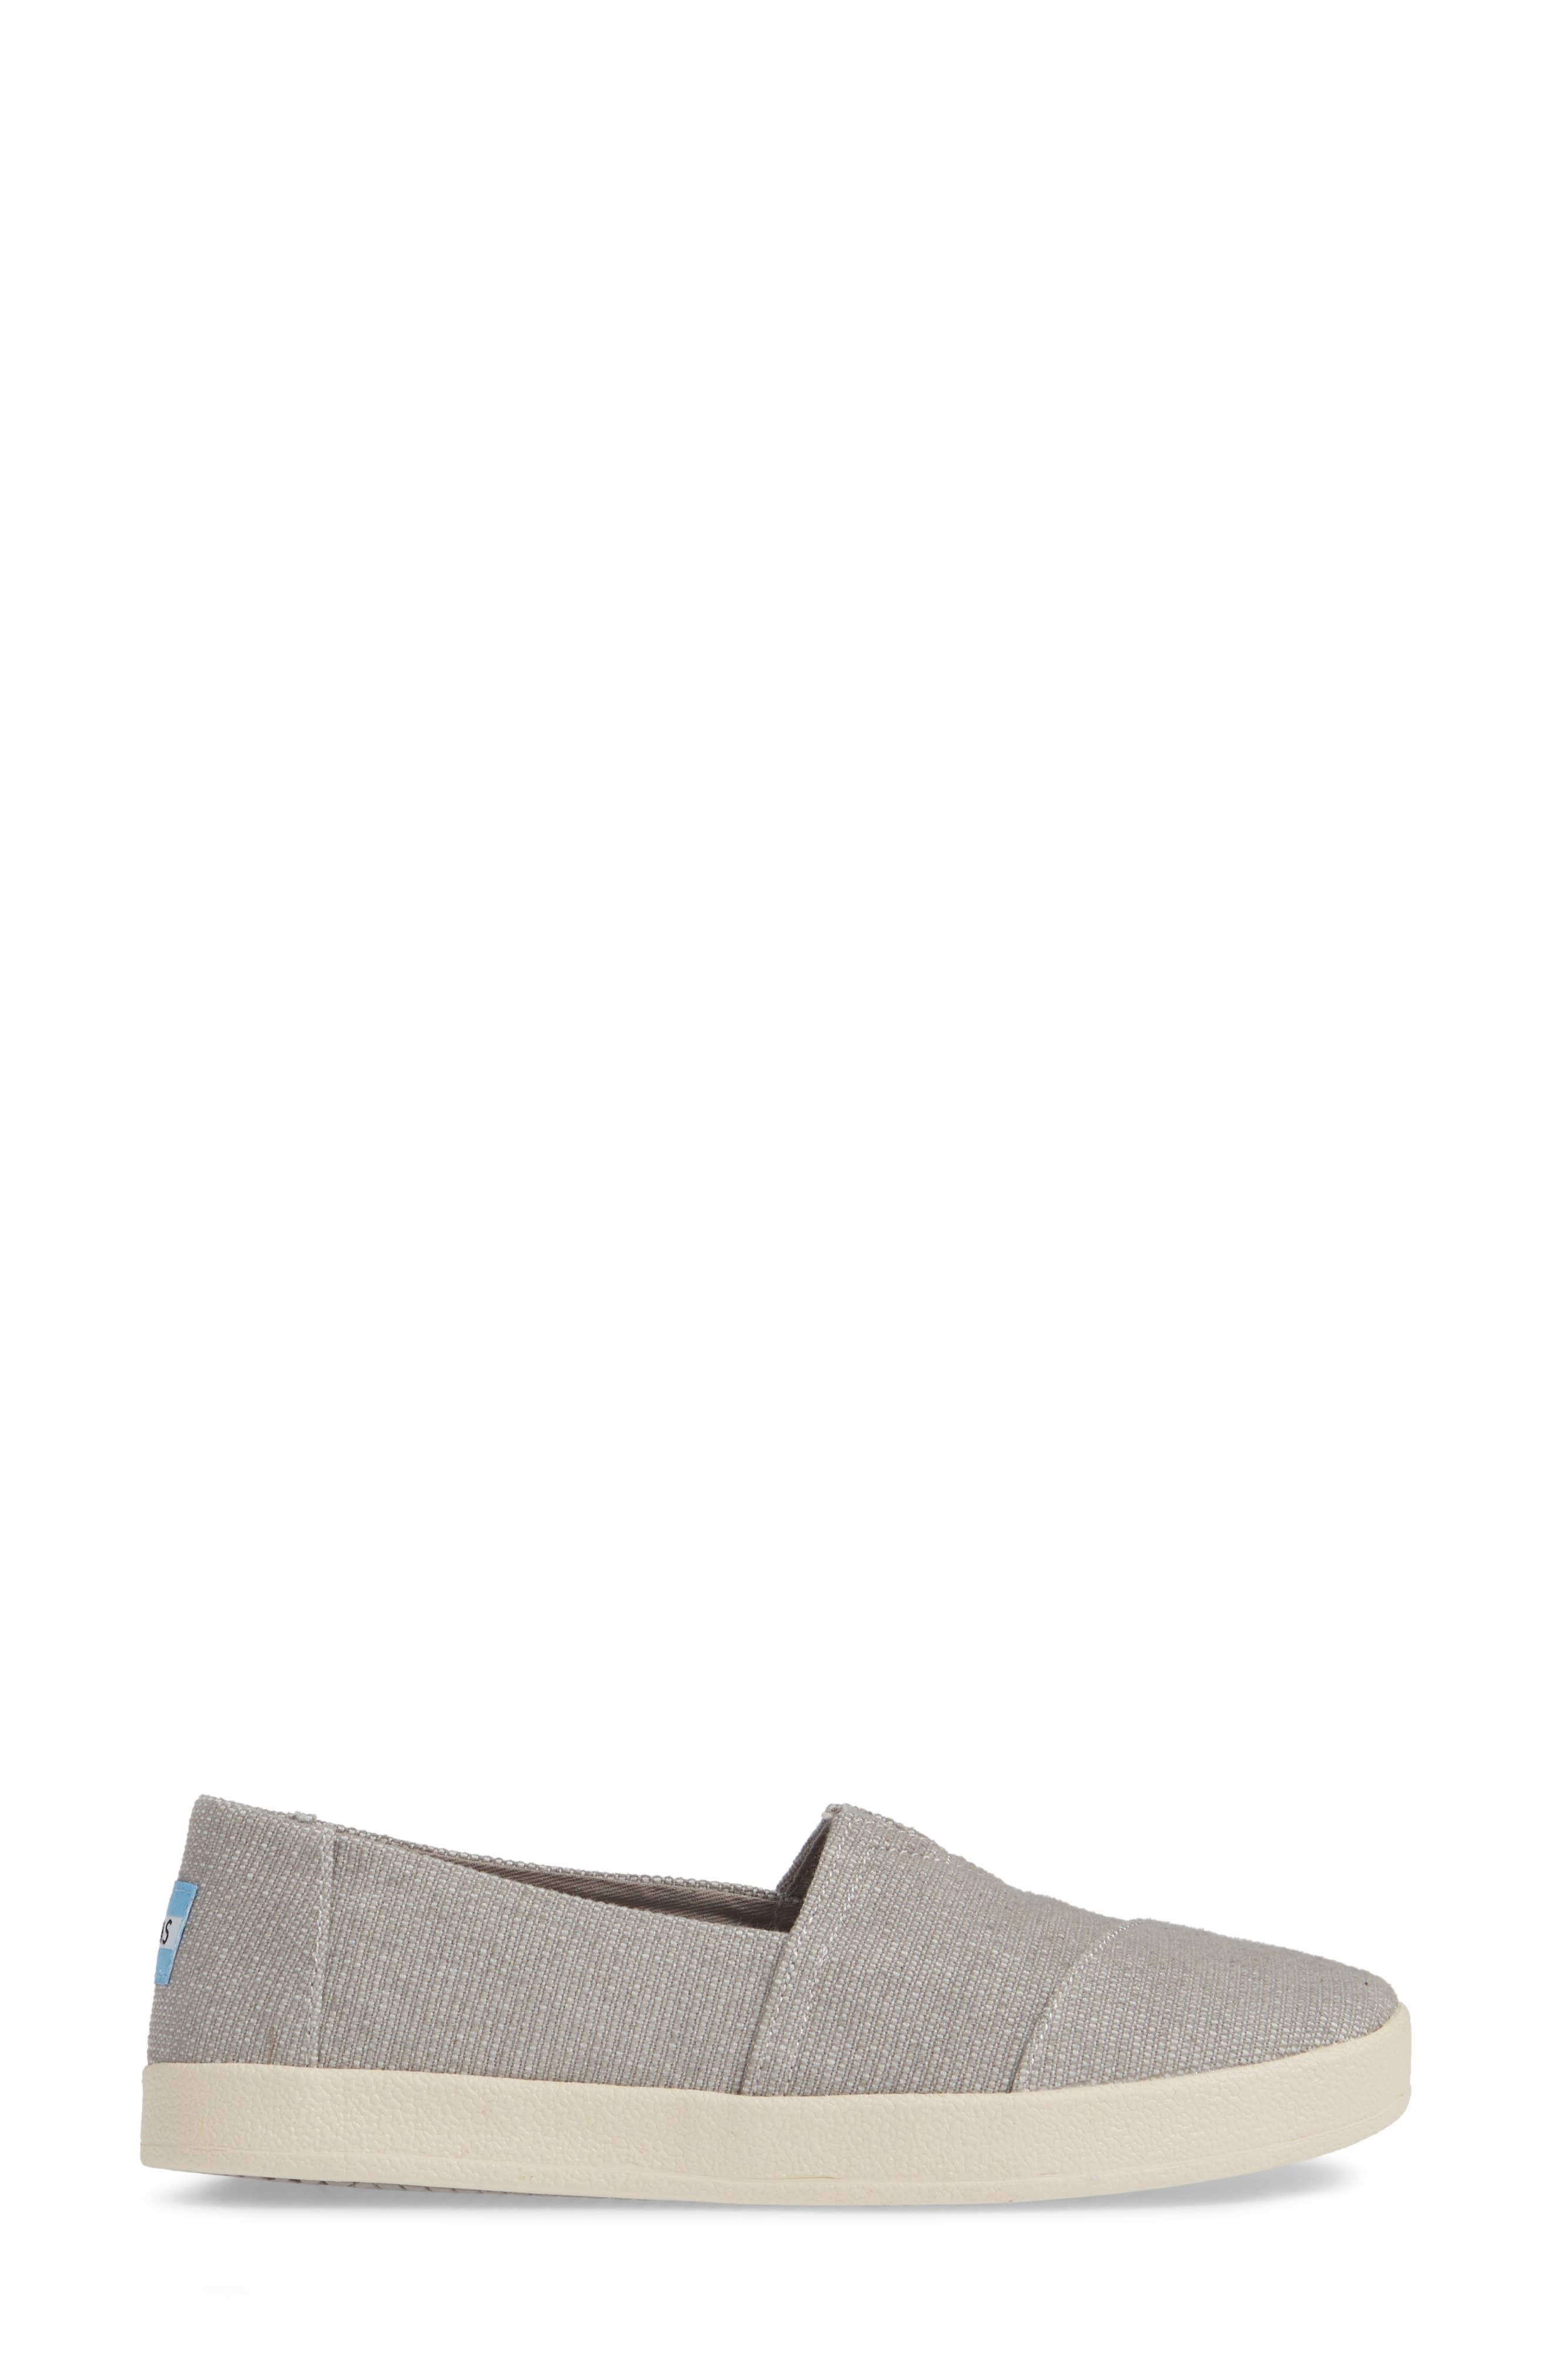 TOMS, Avalon Slip-On Sneaker, Alternate thumbnail 3, color, DRIZZLE GREY CANVAS